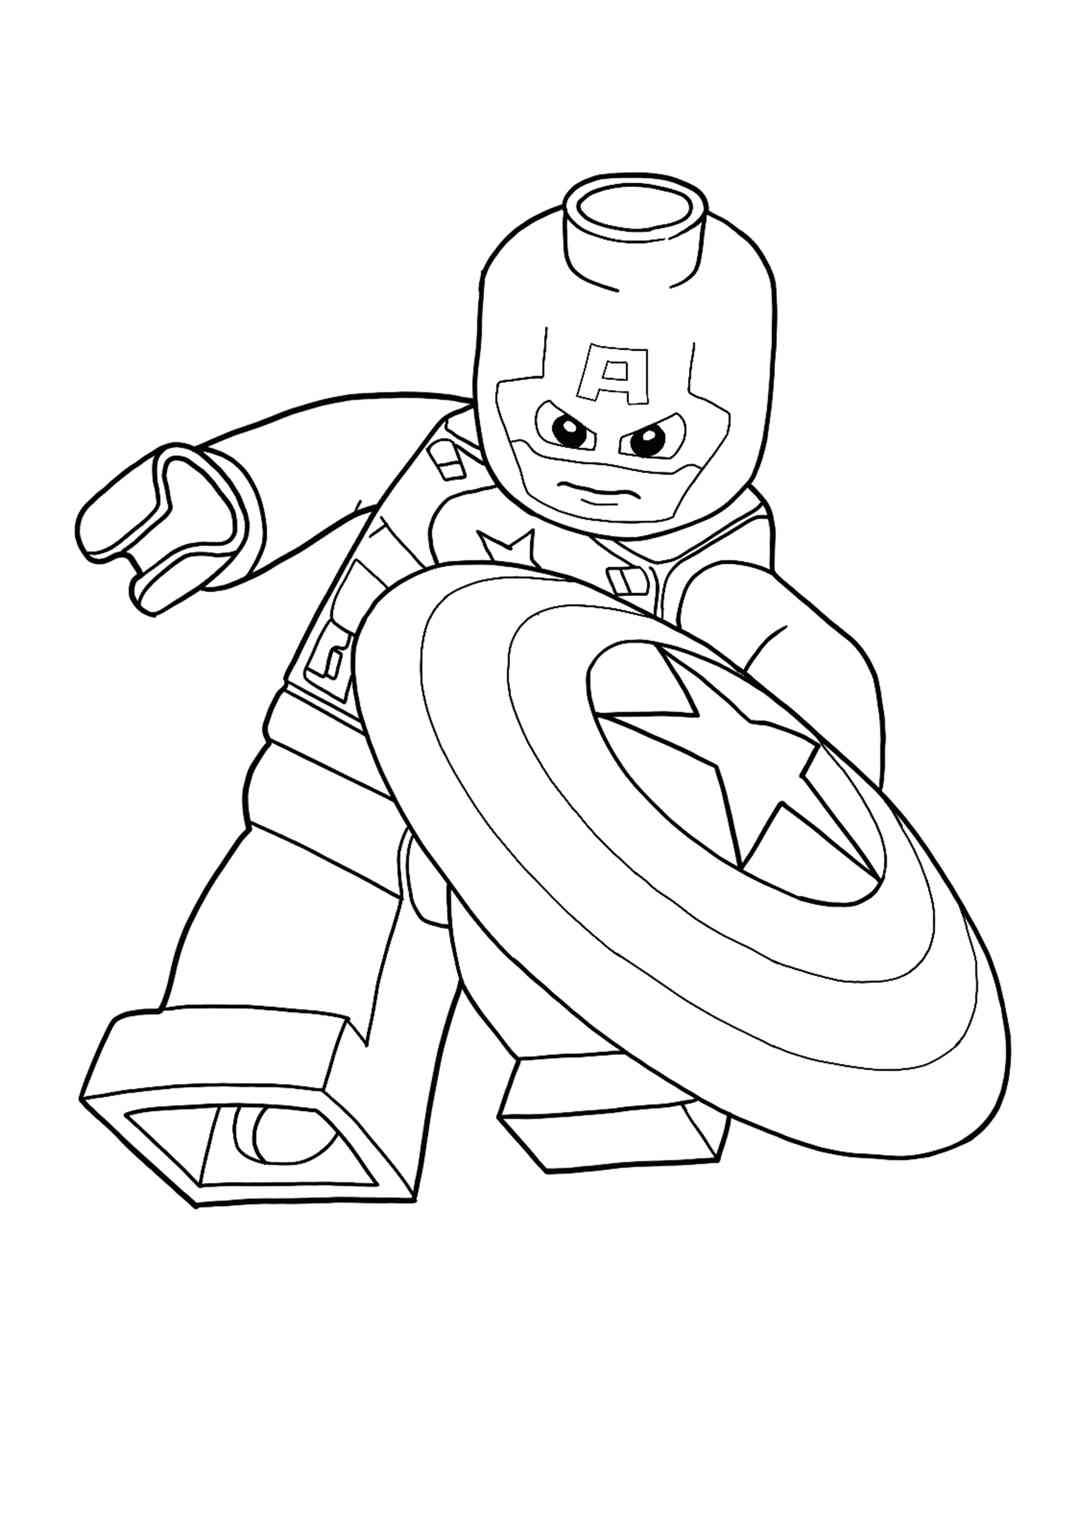 Lego Captain America Coloring Page Captain America Coloring Pages Superhero Coloring Pages Avengers Coloring Pages